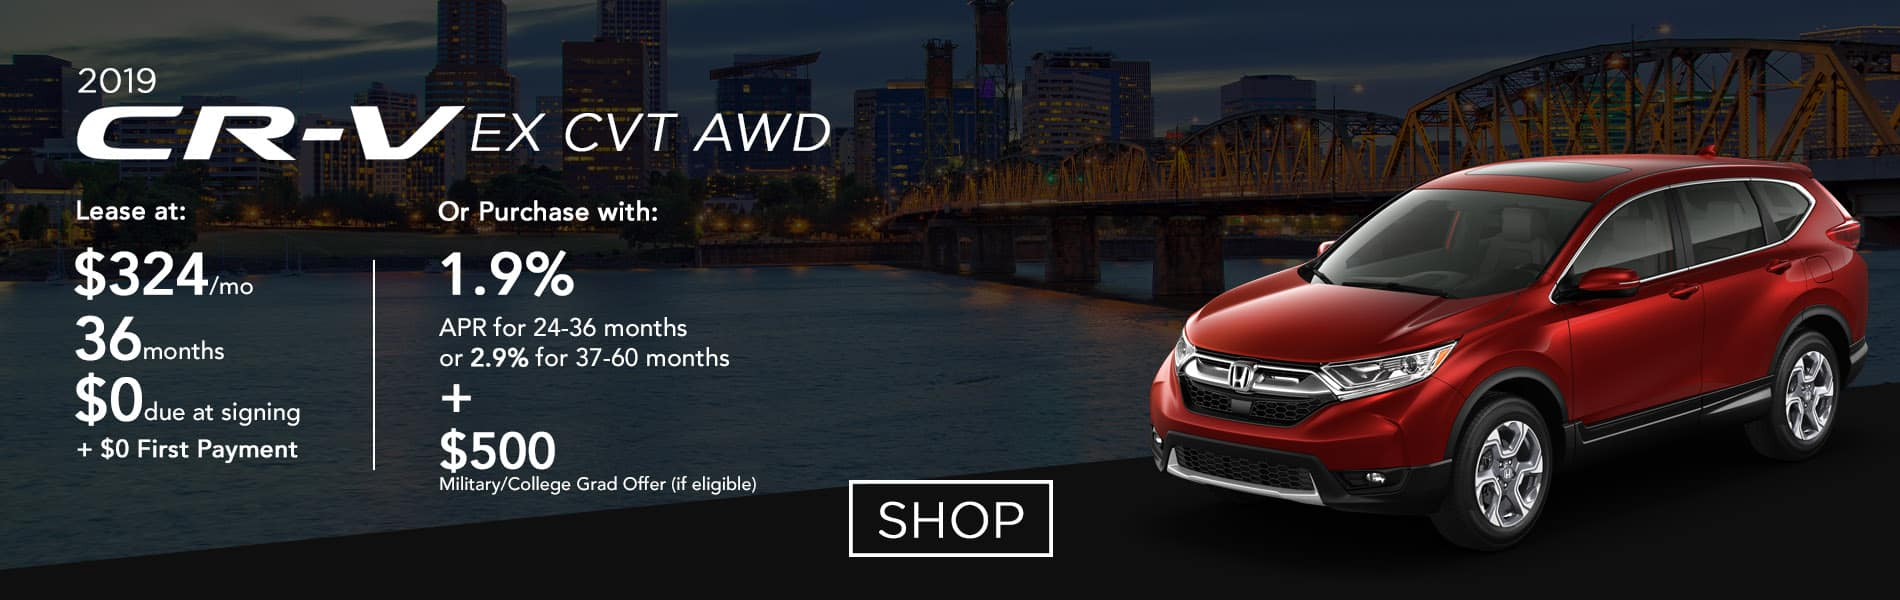 Lease a 2019 CR-V EX CVT AWD for $324 per month or purchase with 1.9% APR up to 36 months